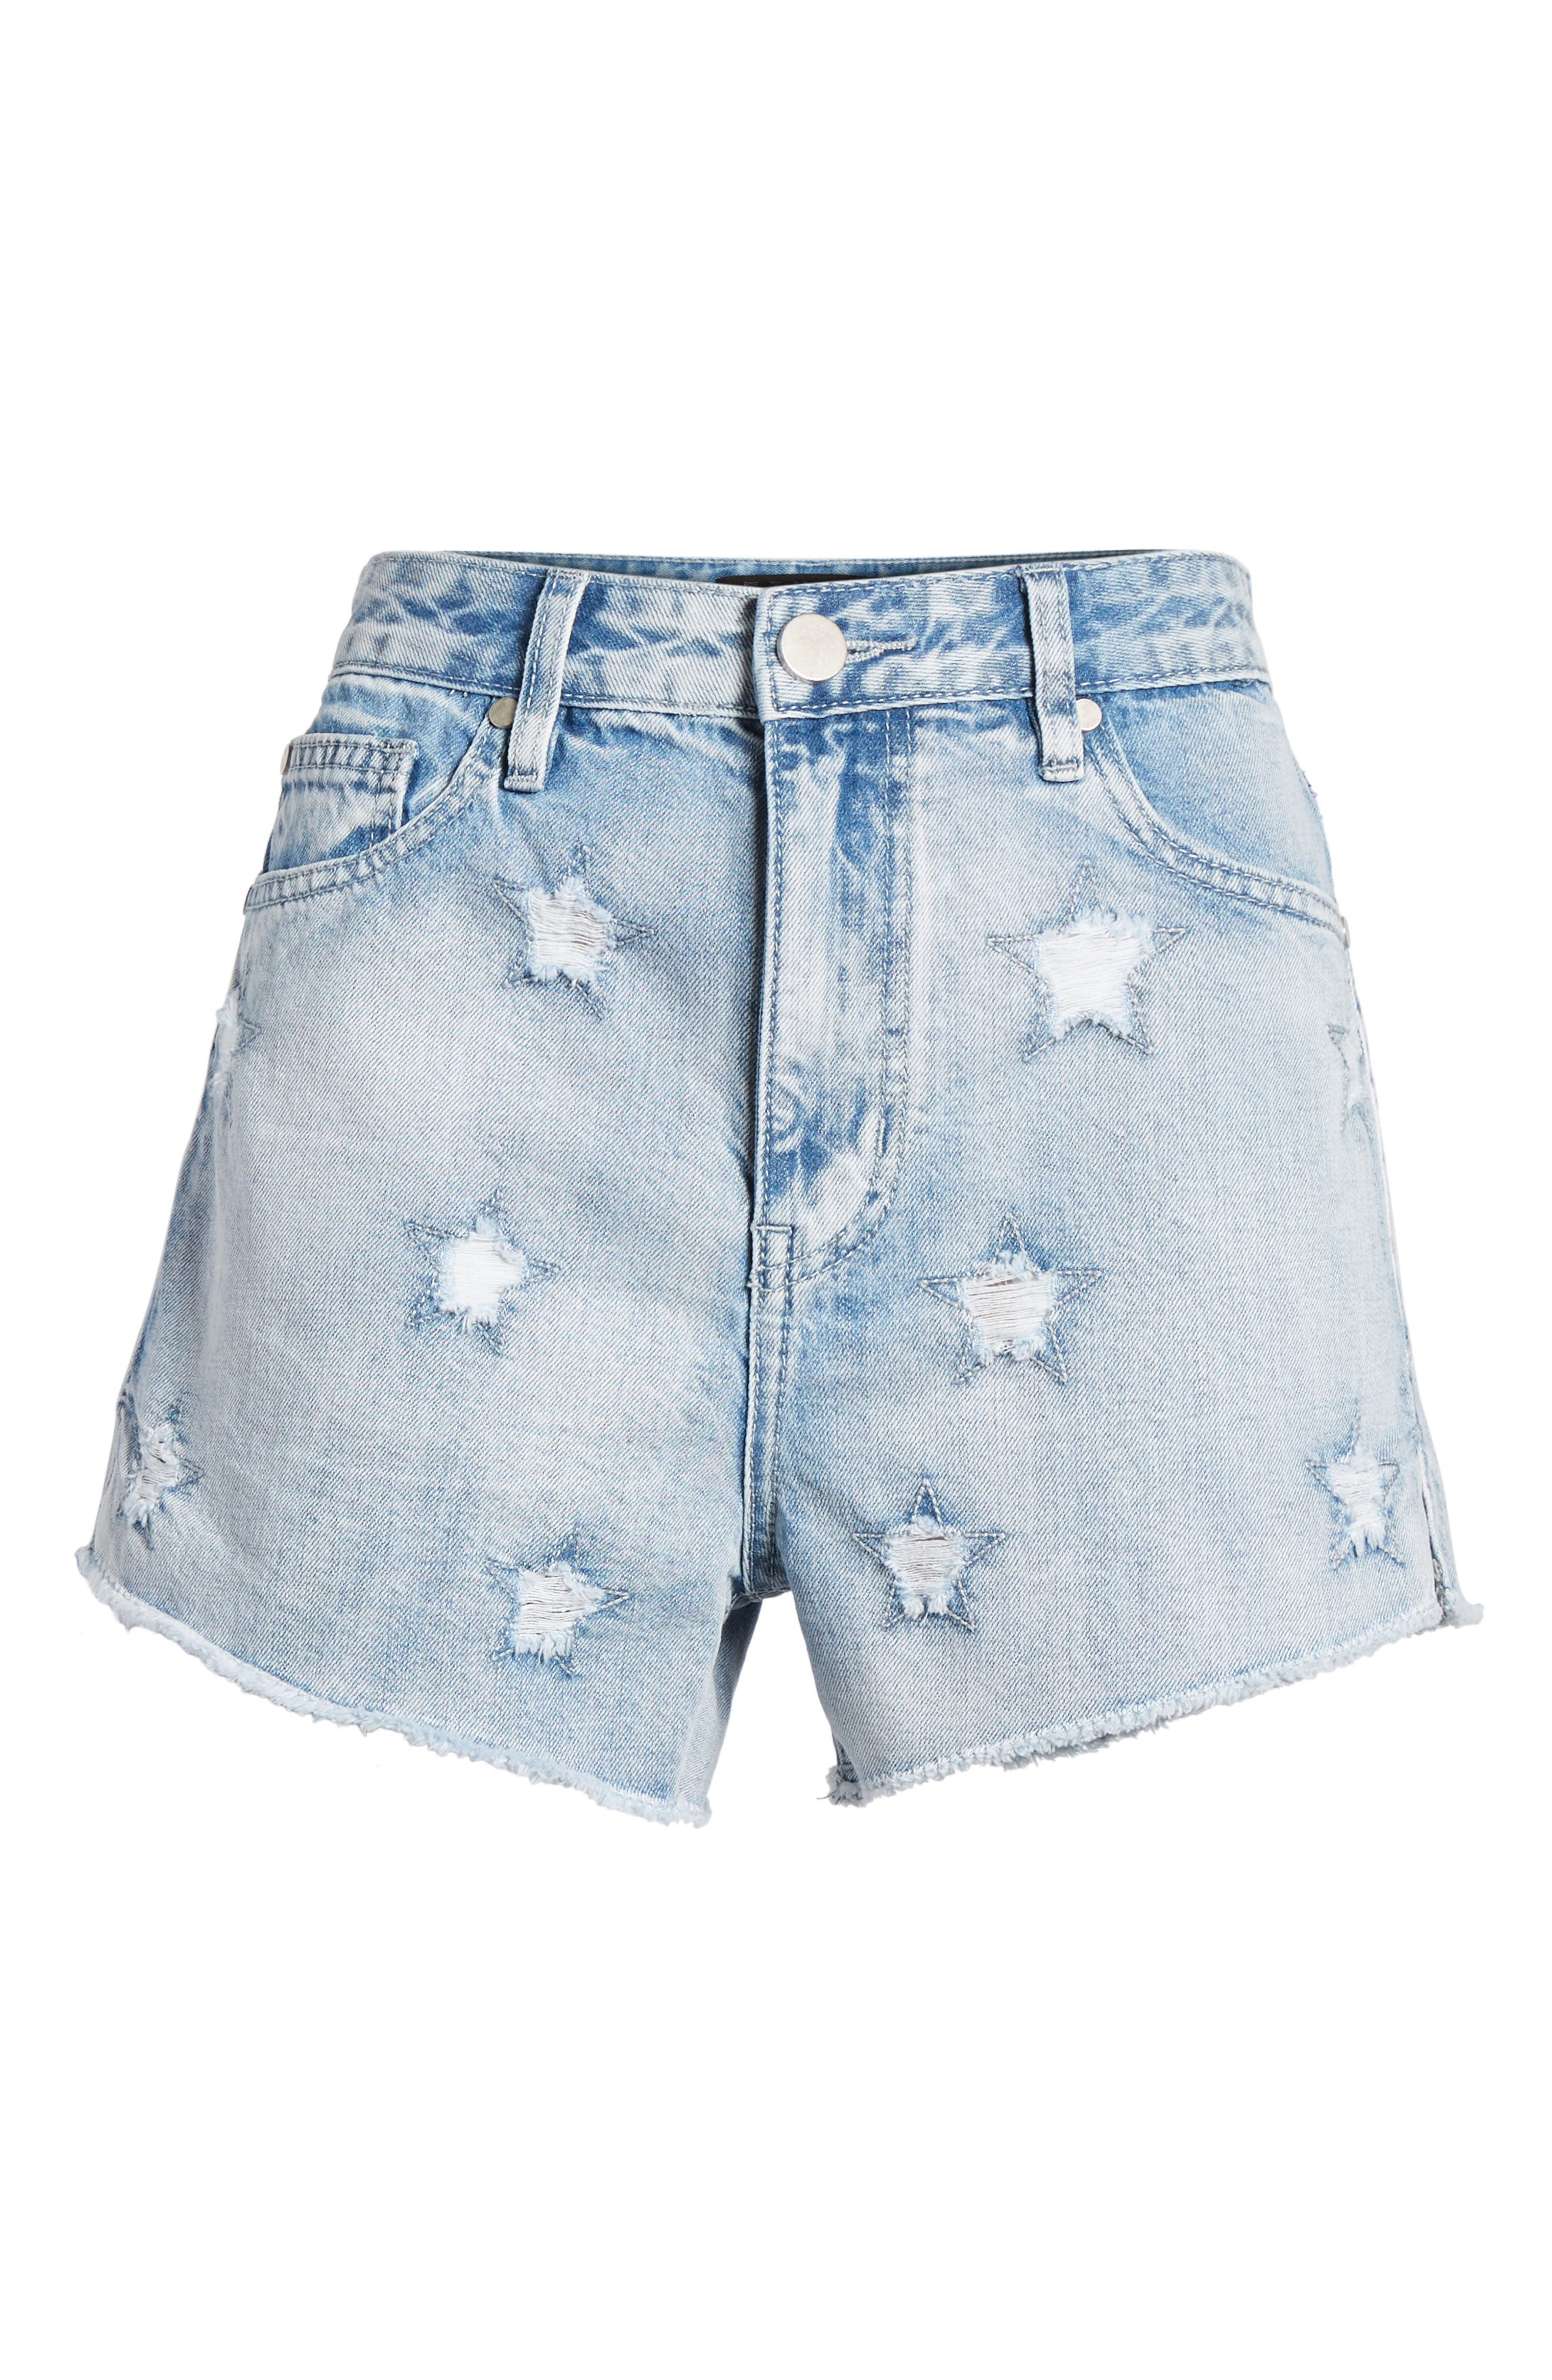 Acid Wash Star Denim Shorts,                             Alternate thumbnail 7, color,                             Super Light Acid